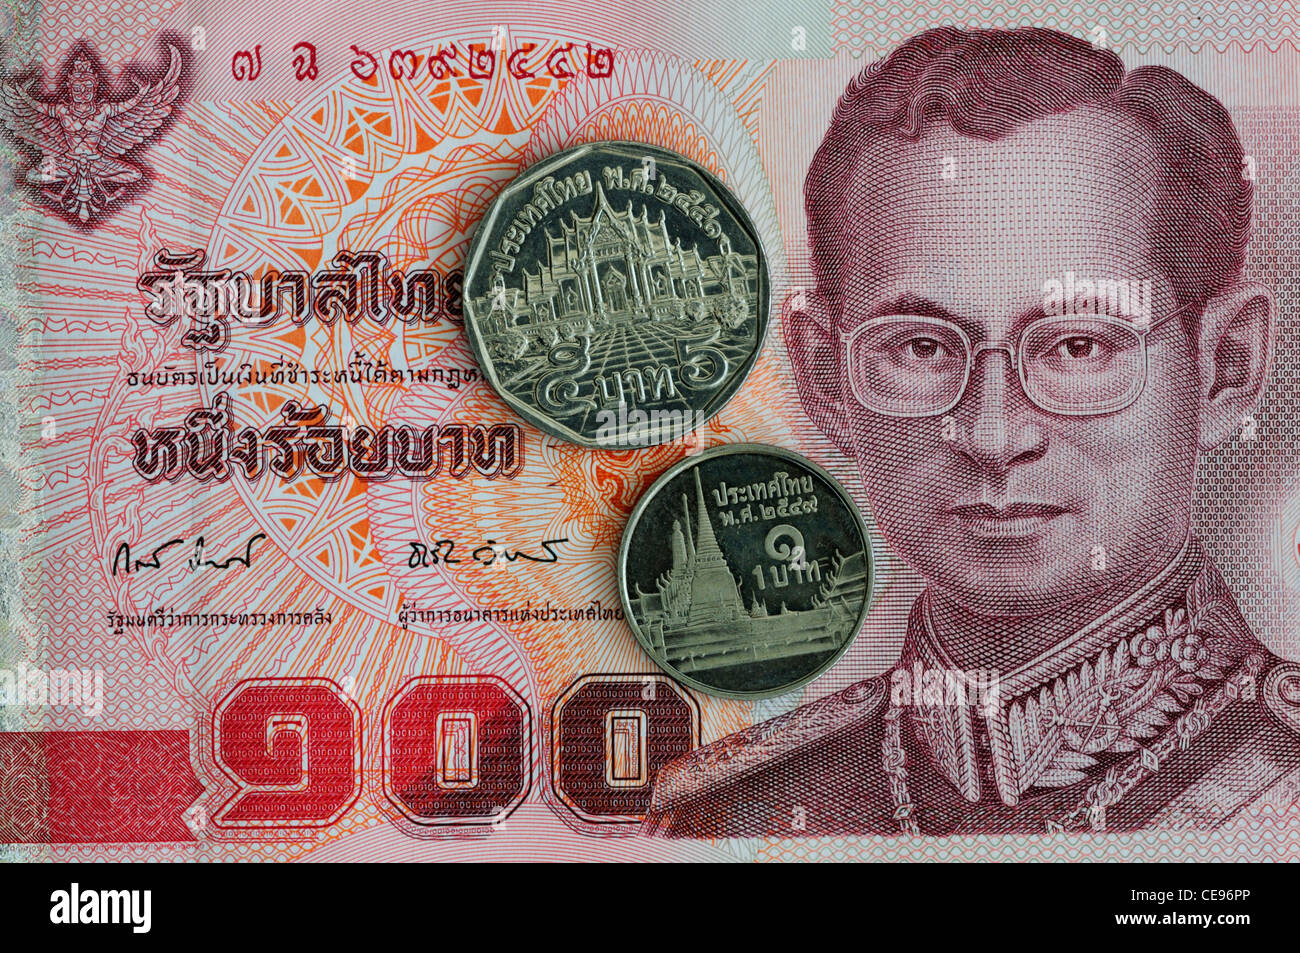 One Hundred Thai Baht Banknote with 5 Baht and 1 Baht Coins - Stock Image